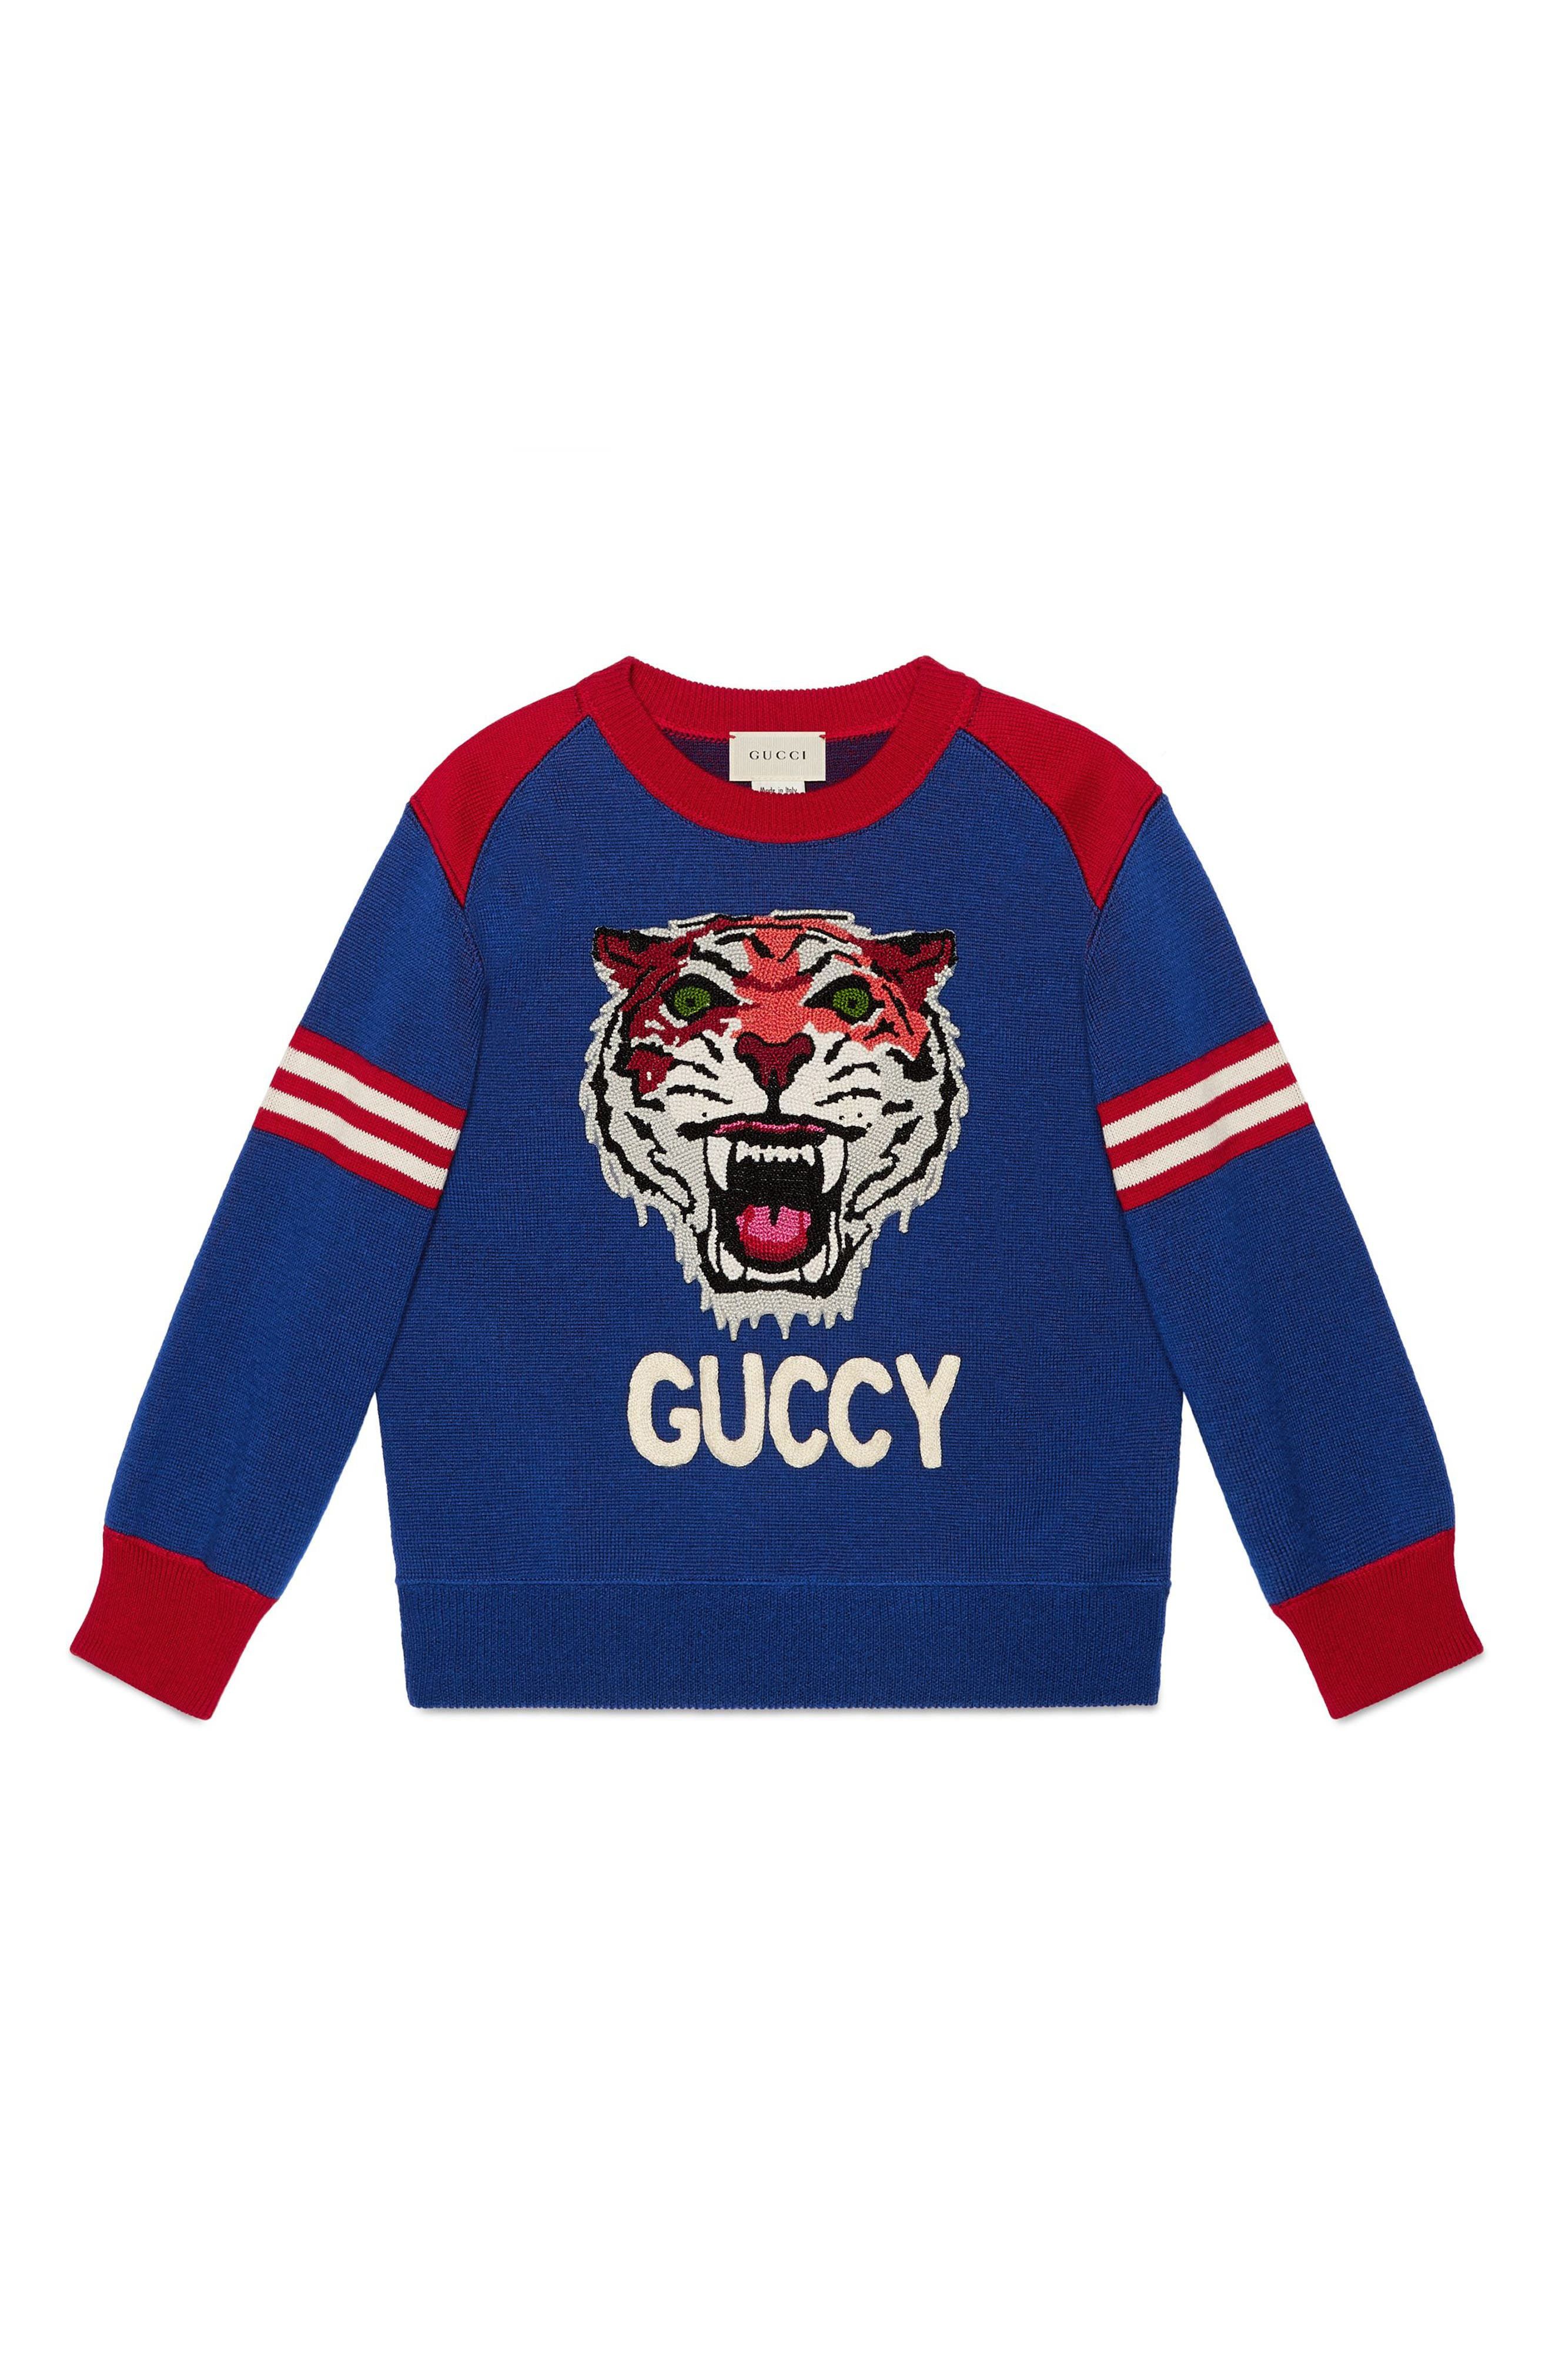 GUCCI,                             Embroidered Sweater,                             Main thumbnail 1, color,                             BLUE MULTI